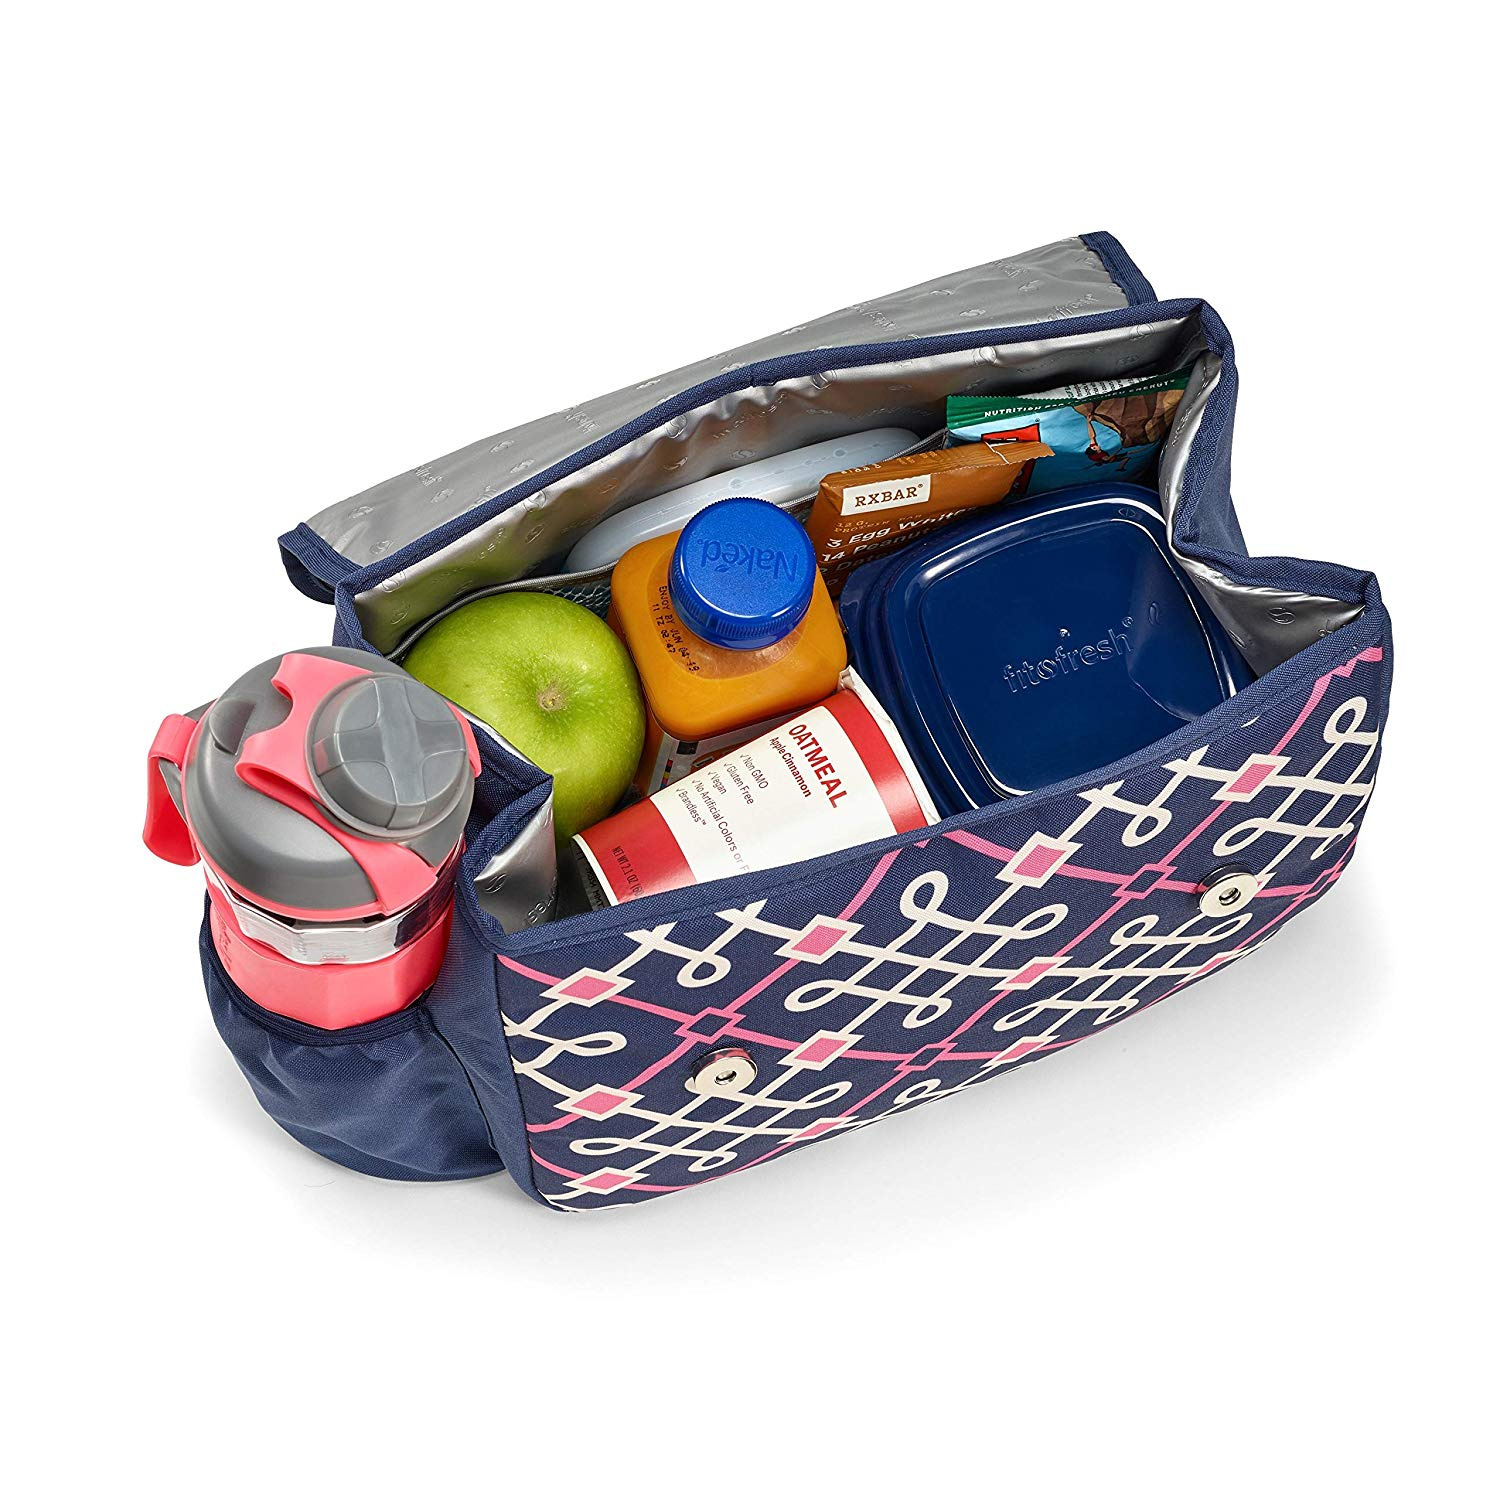 a95132a78f0d Fit & Fresh Lovelock Insulated Lunch Bag Kit for Women with BPA-Free  Container Set and Shaker Bottle, Navy Hilton Garden